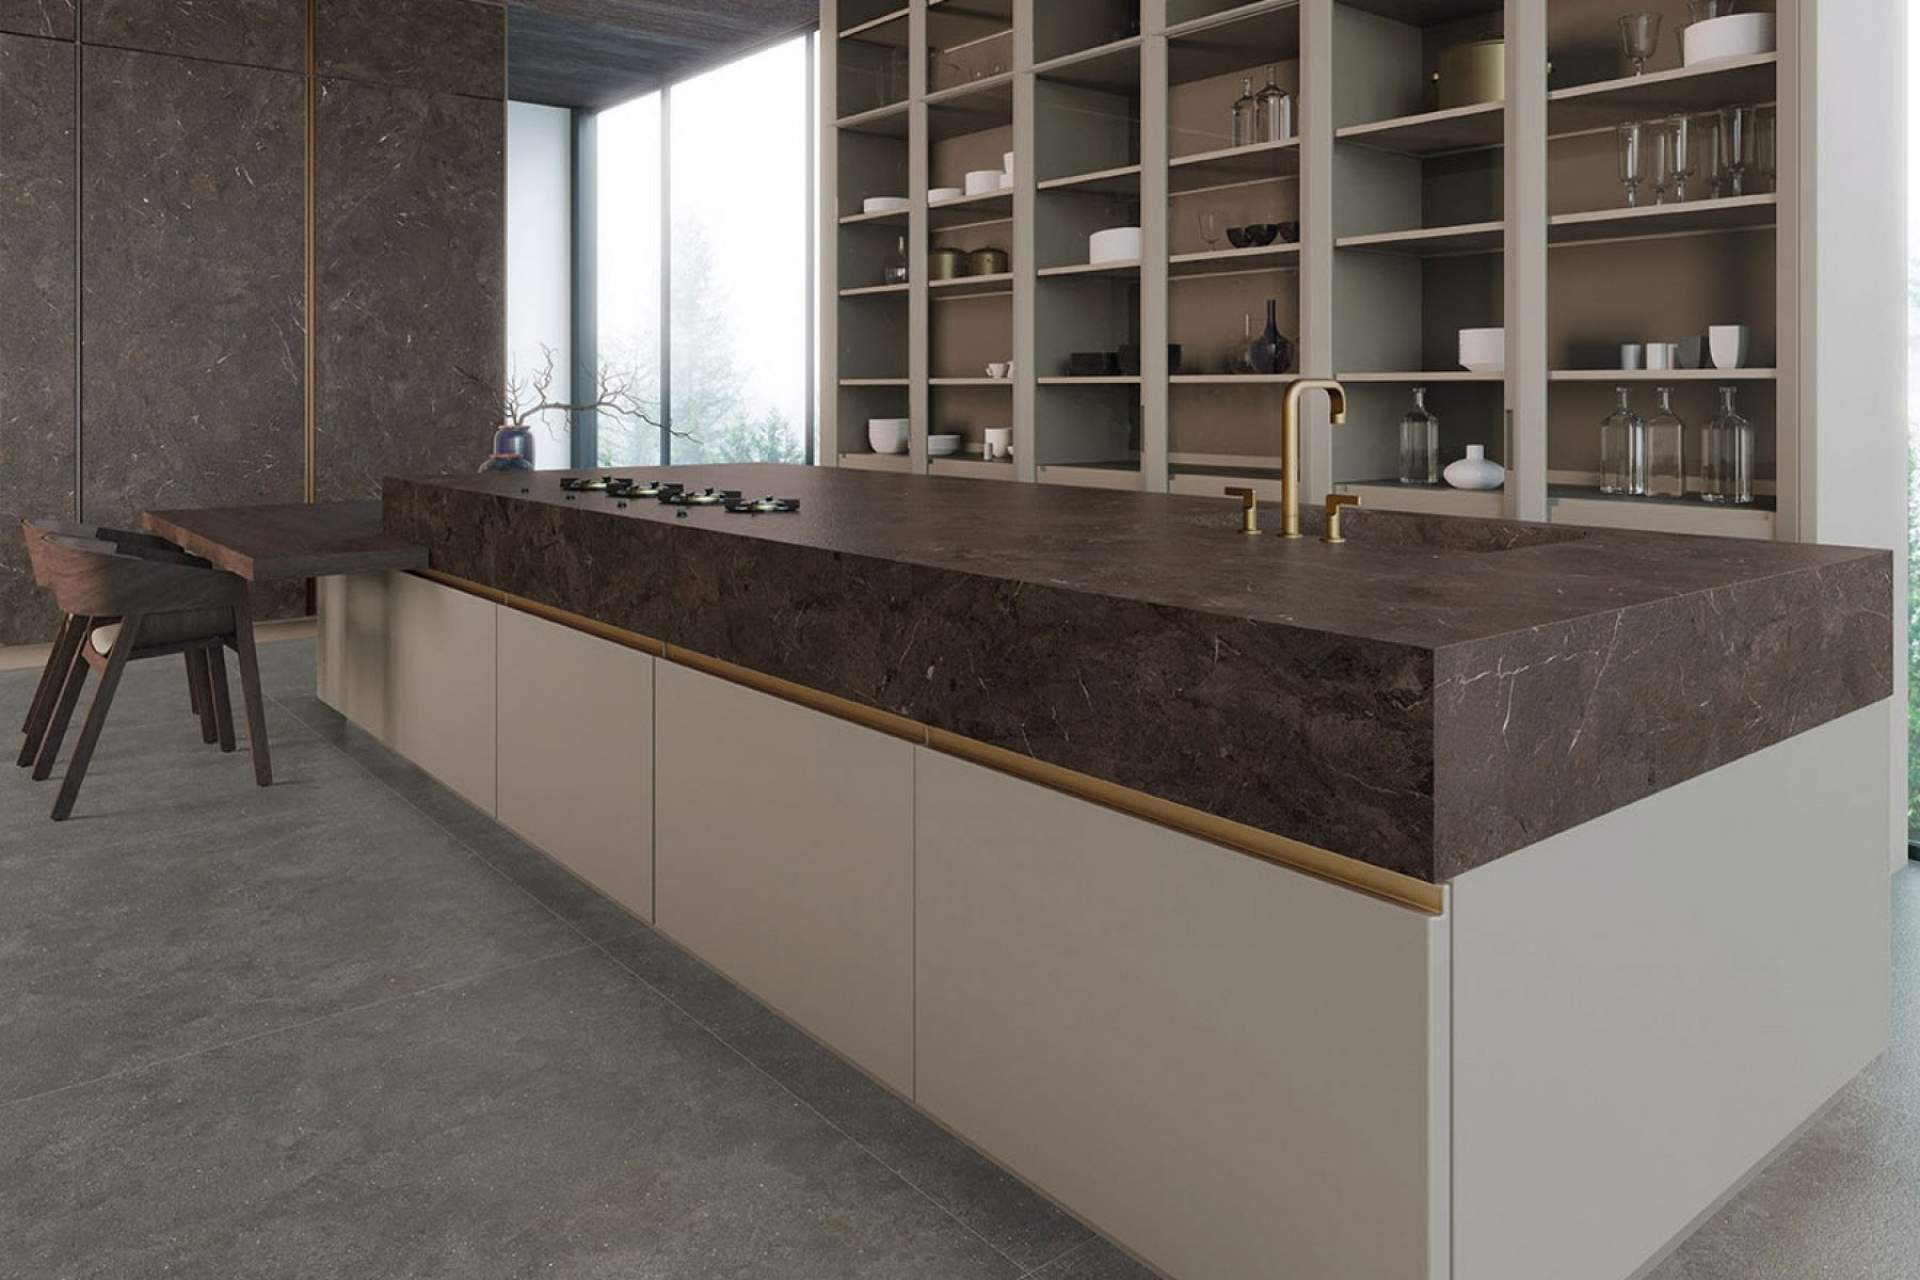 Surface kitchen setting using grey bush hammered tile